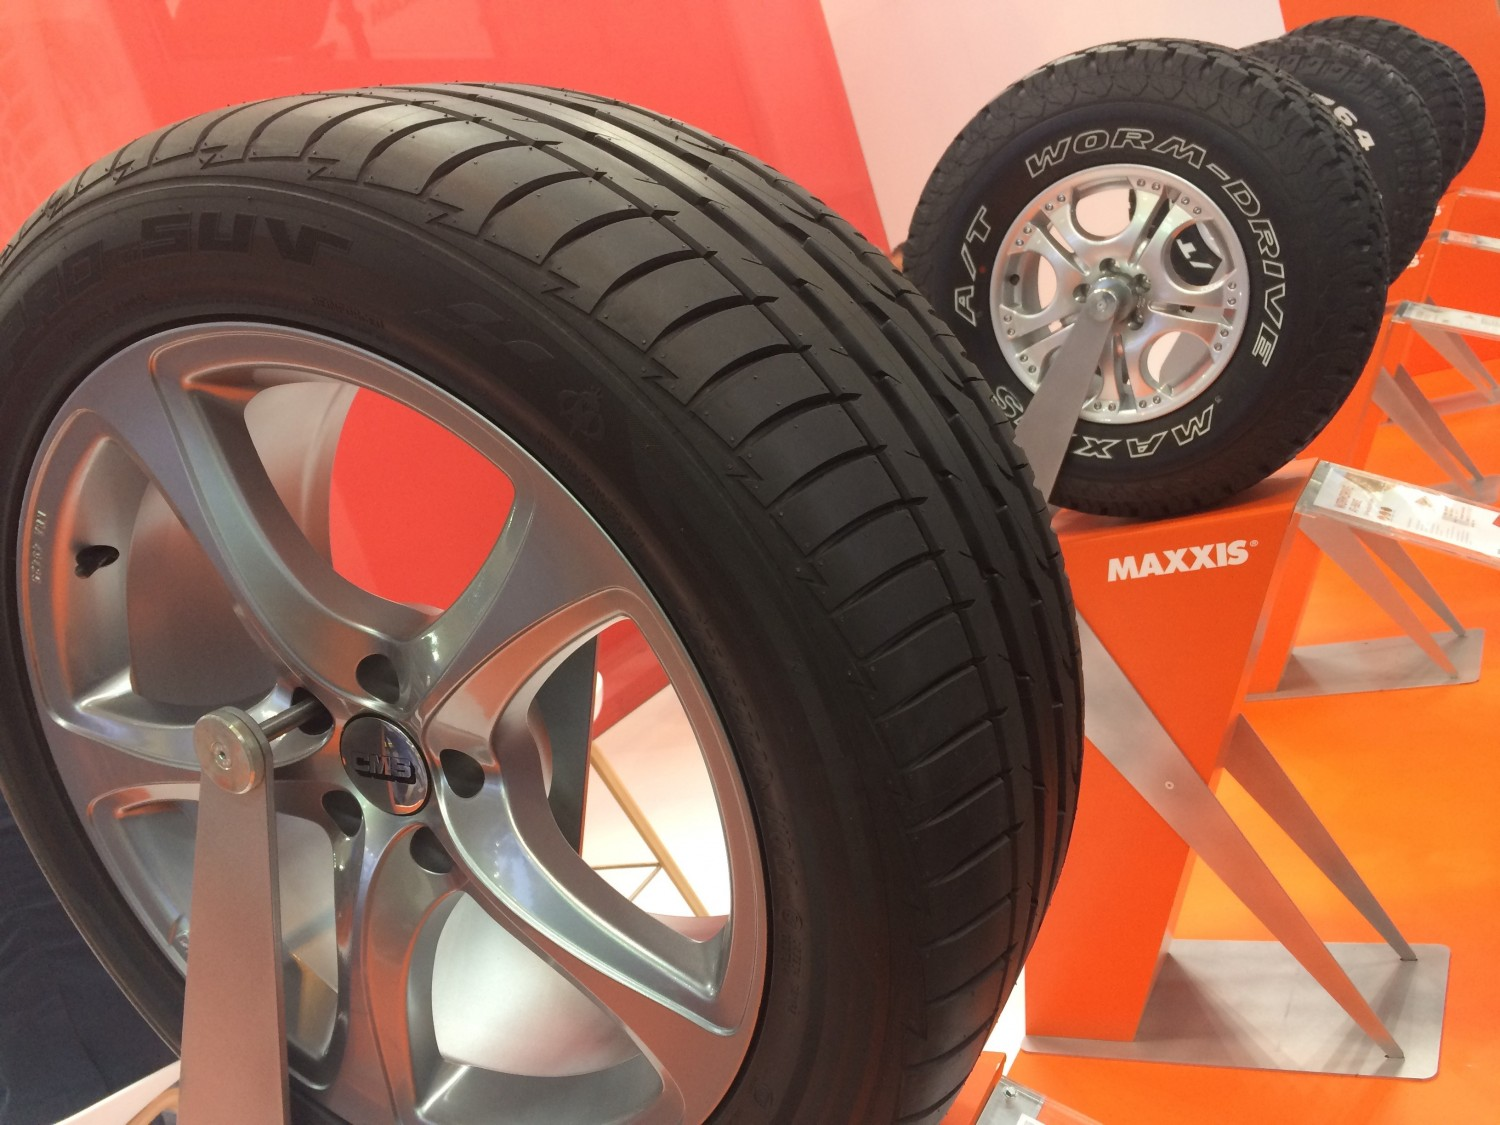 BMW Convertible continental run flat tires bmw price Maxxis unveils new HP and run flat tires at REIFEN - Traction News